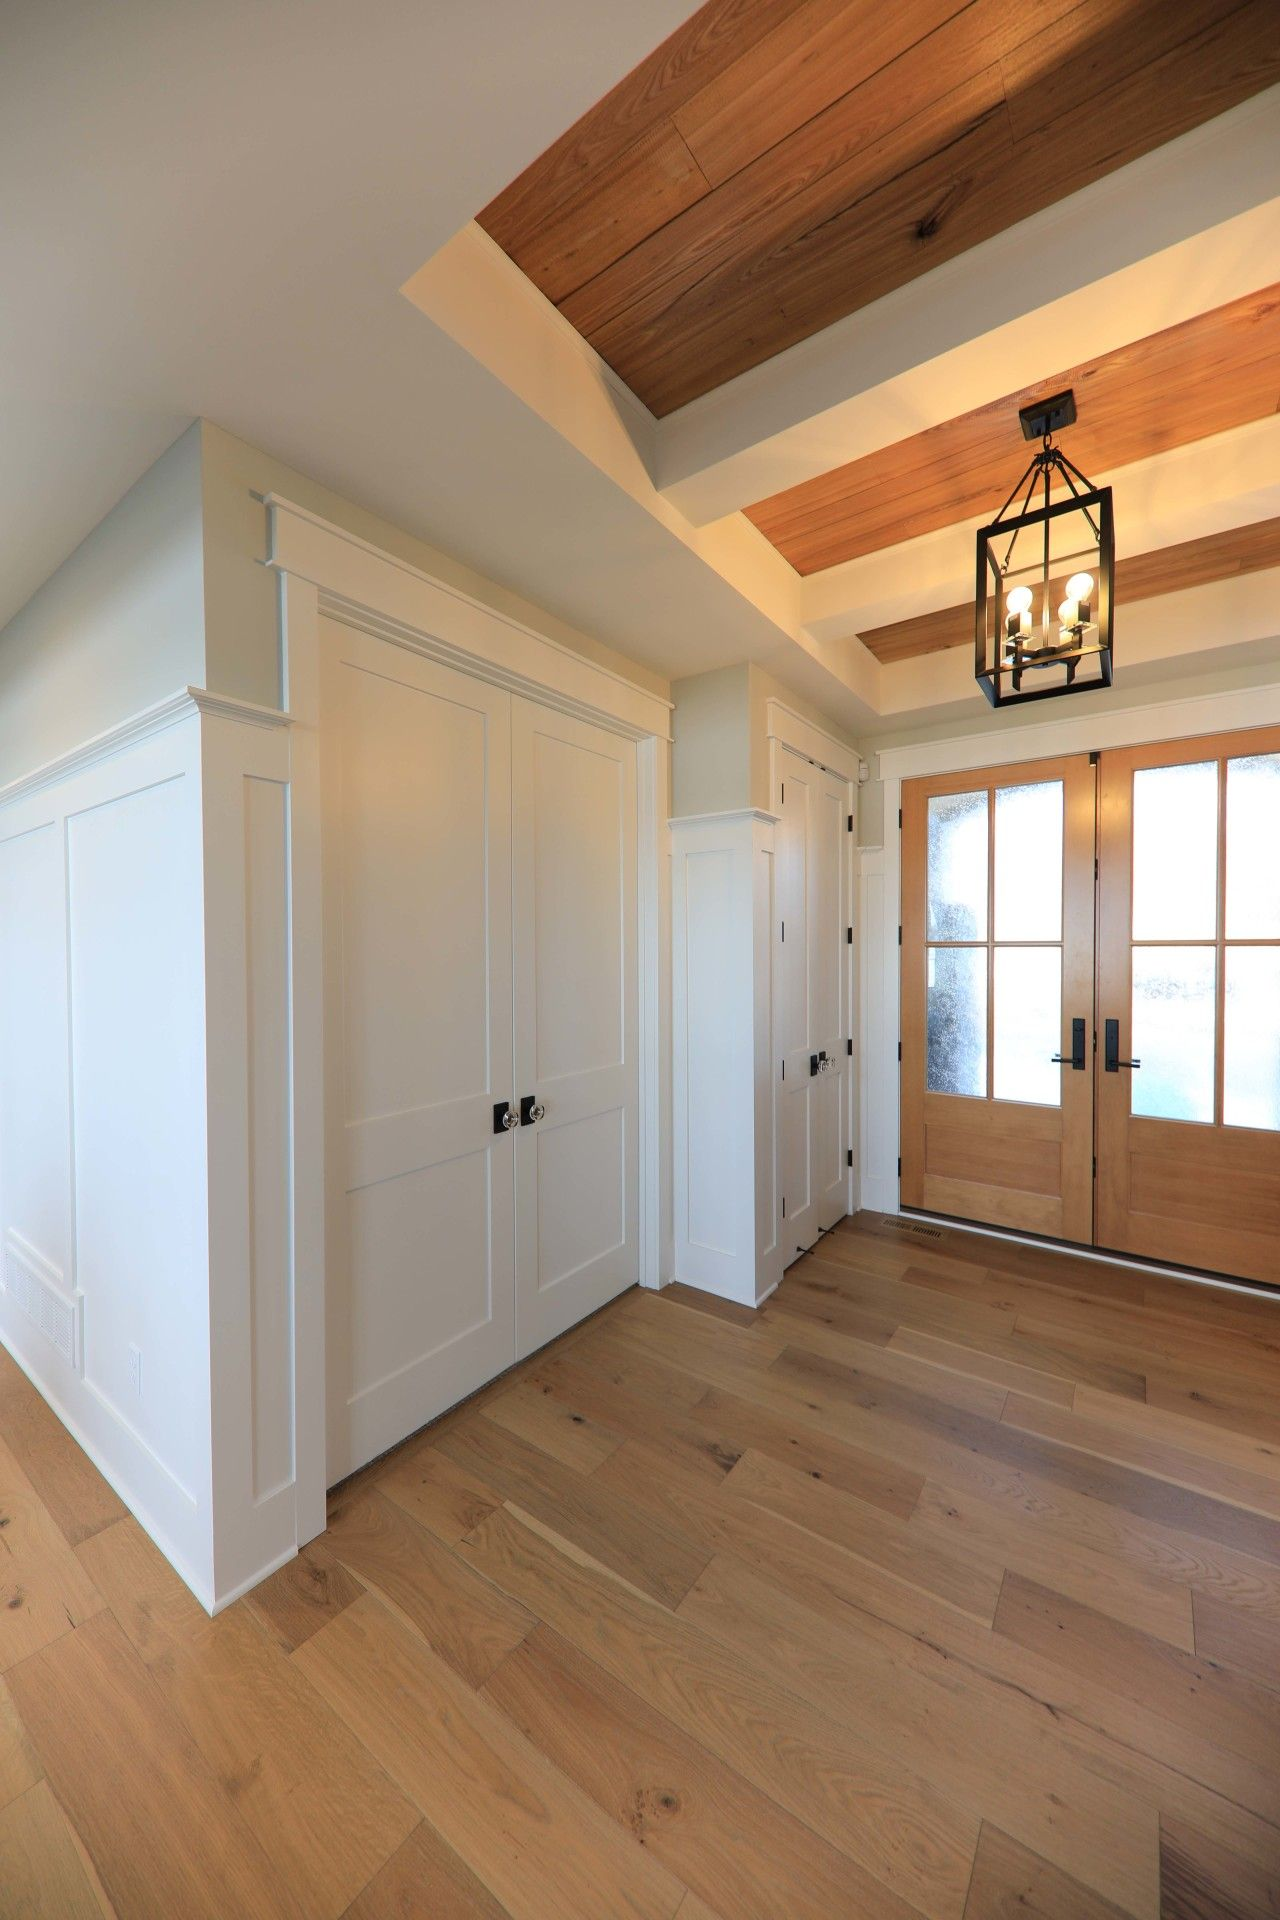 Interior Doors The Return Of White Oak Floors A Pair Of Fir Doors For The Front Entry System And Doors Interior White Oak Floors Installing Hardwood Floors